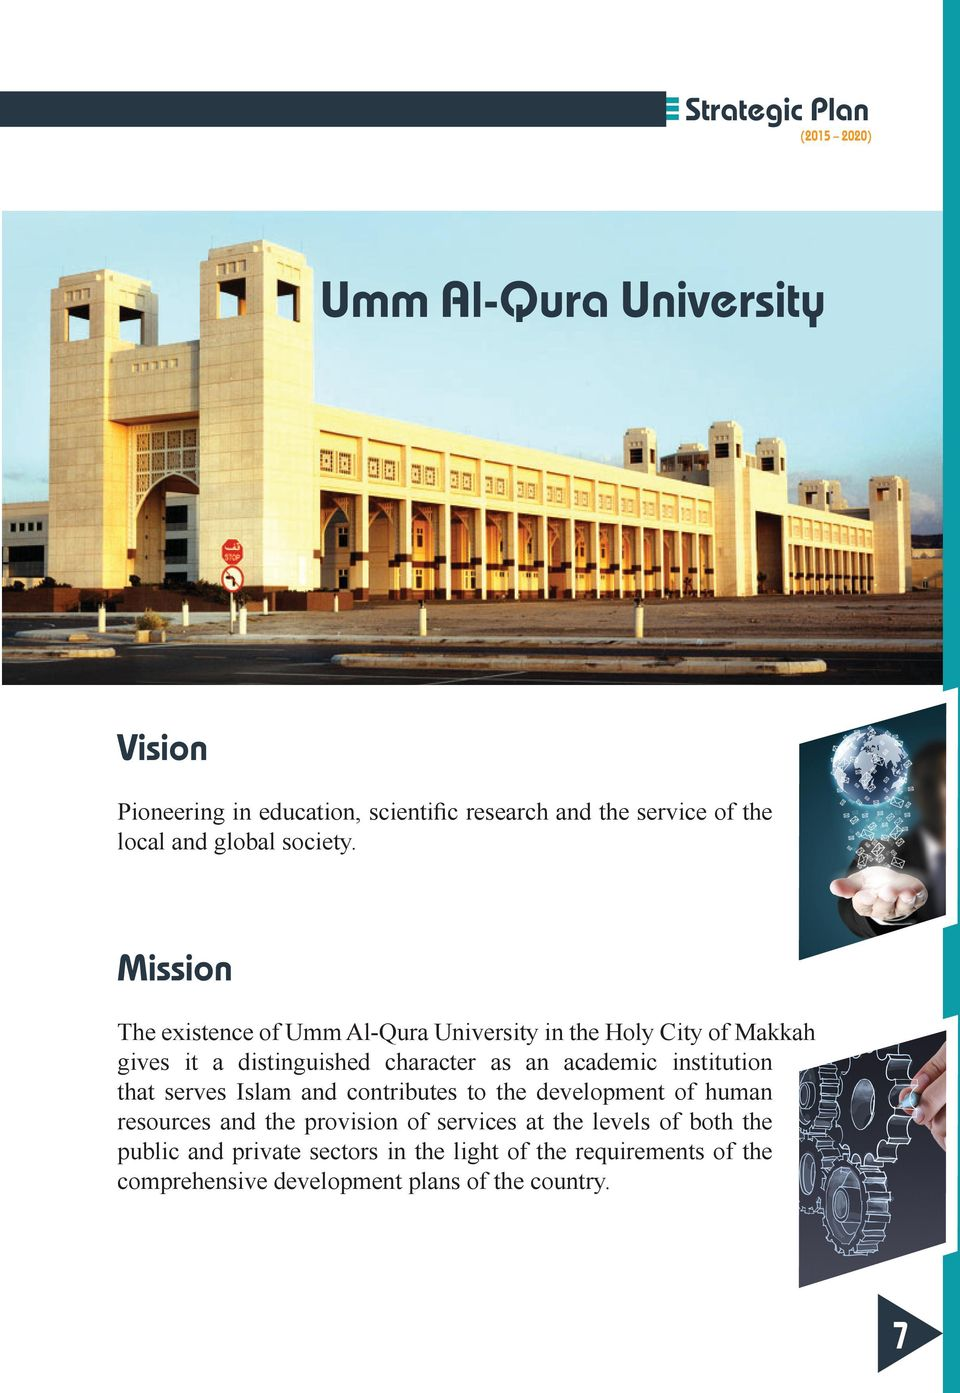 Mission The existence of Umm Al-Qura University in the Holy City of Makkah gives it a distinguished character as an academic